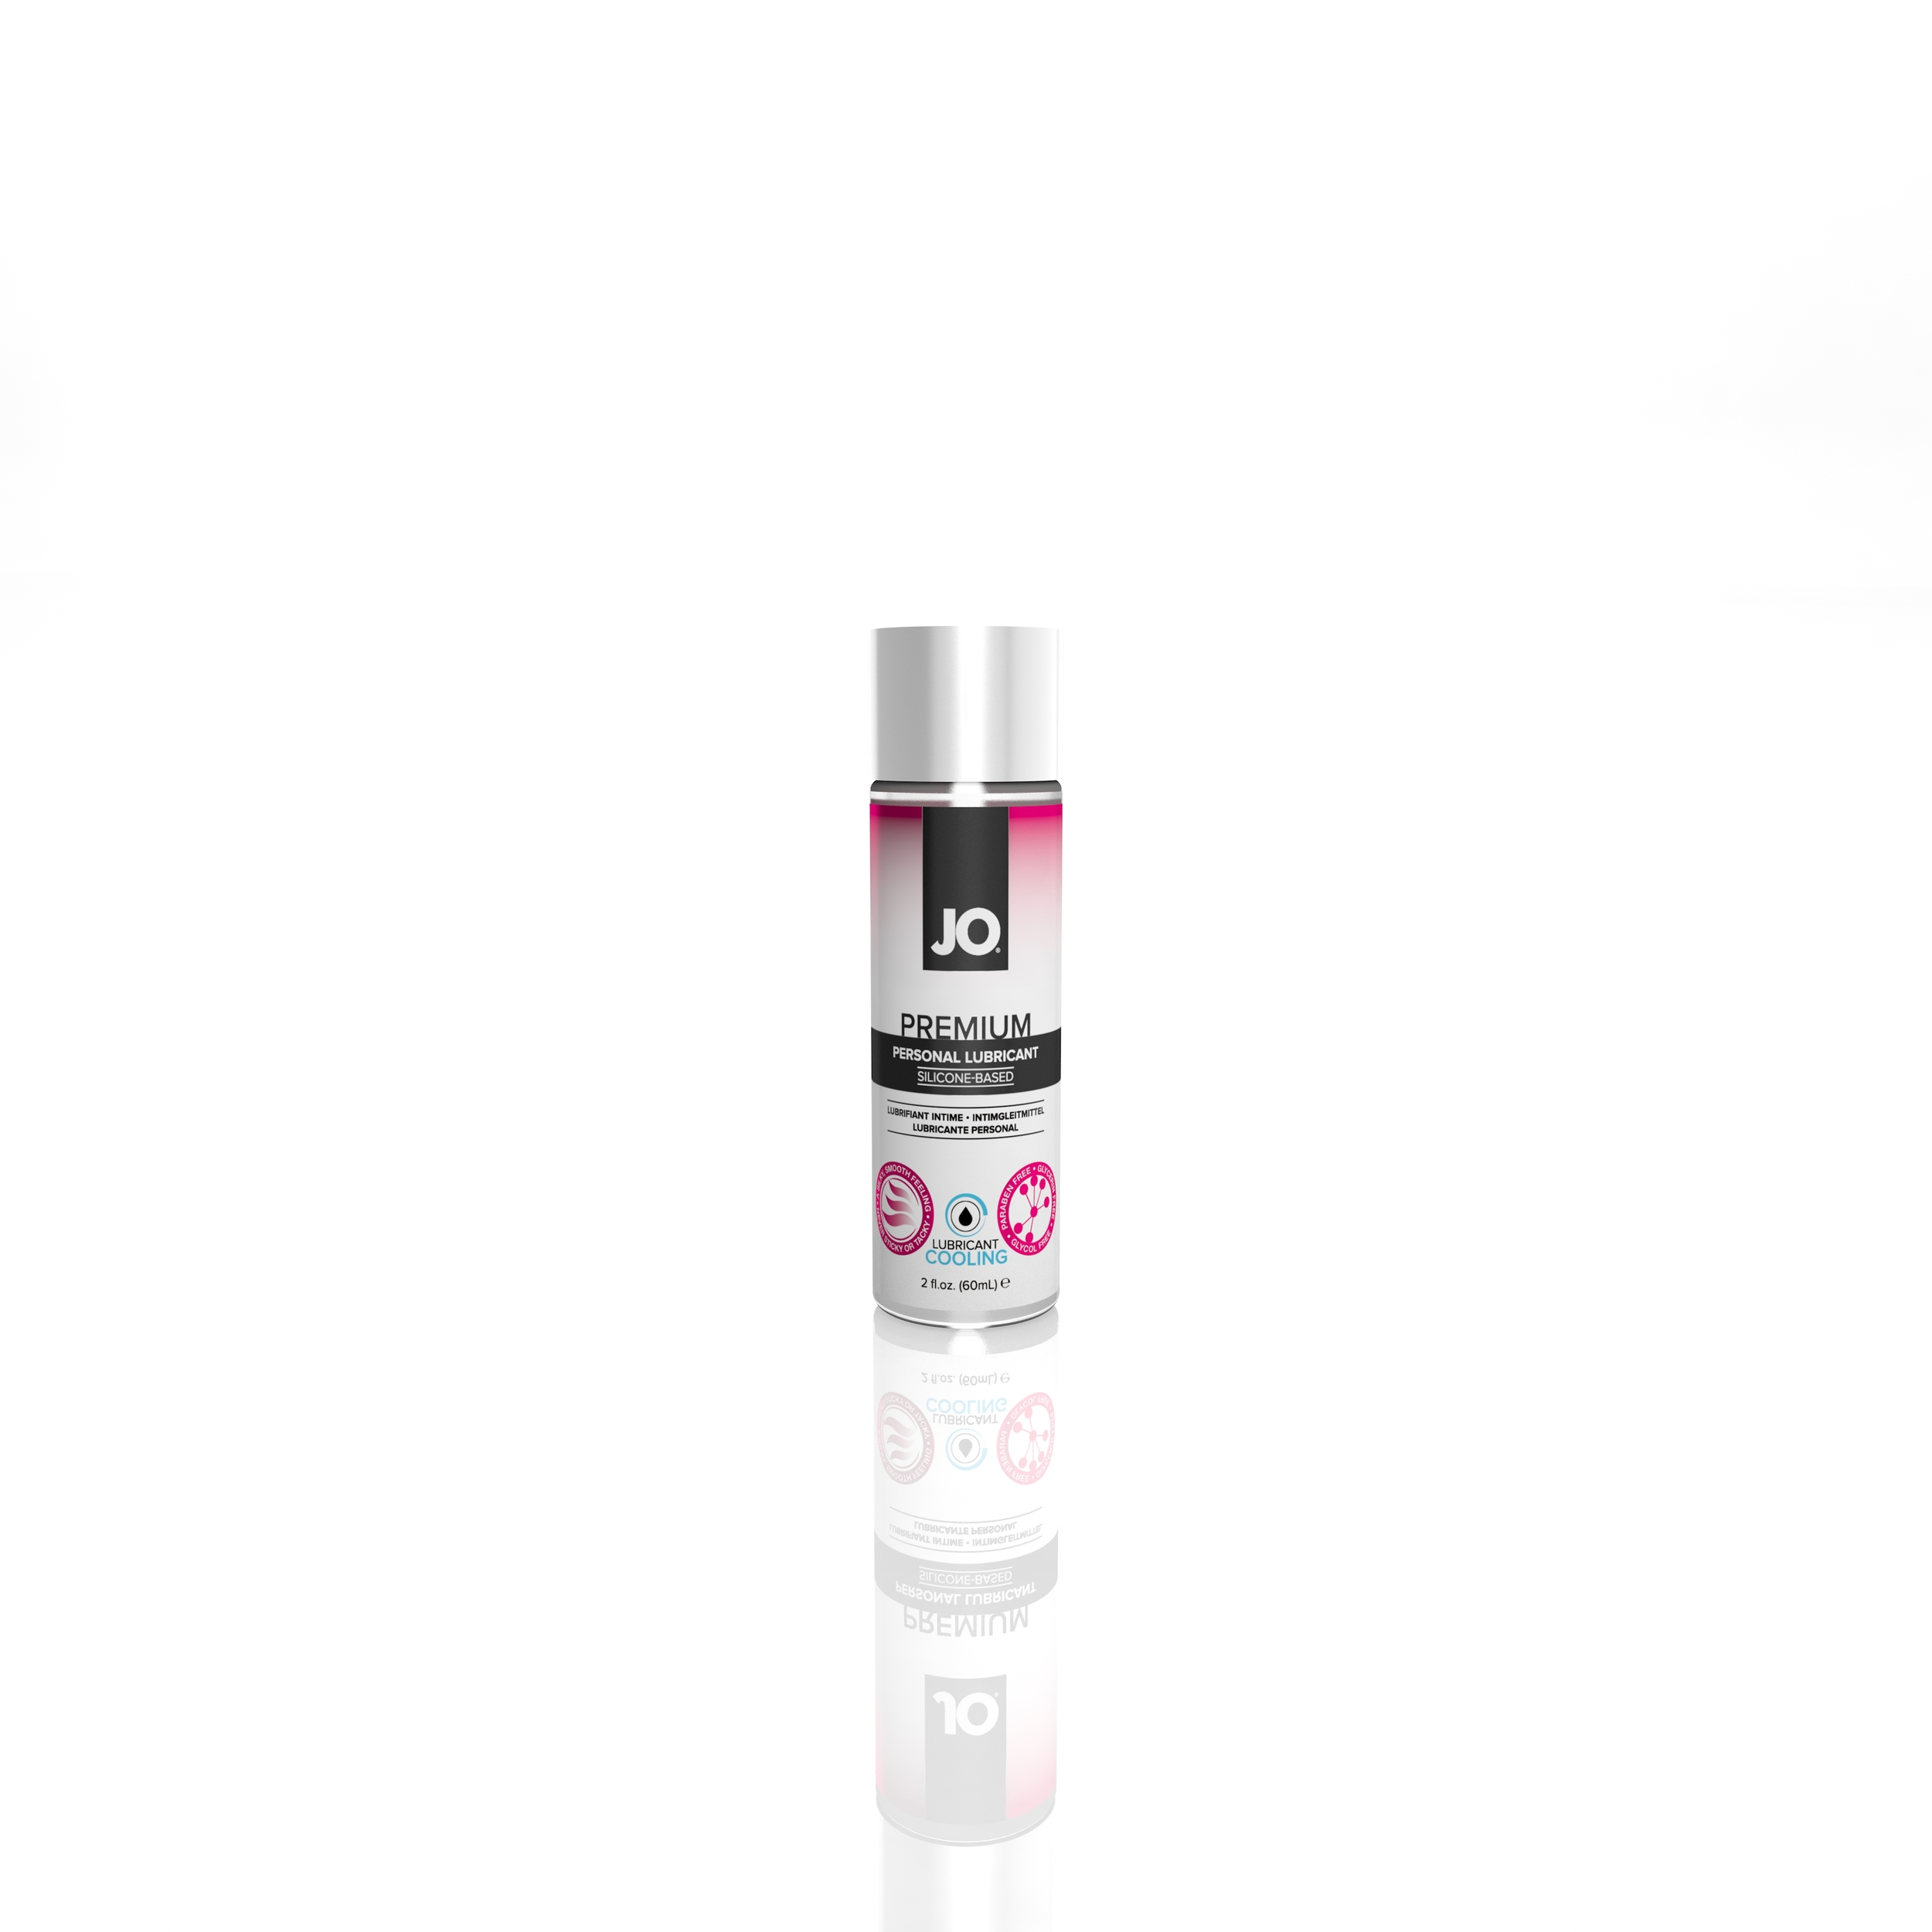 JO® PREMIUM FOR HER 2oz COOLING